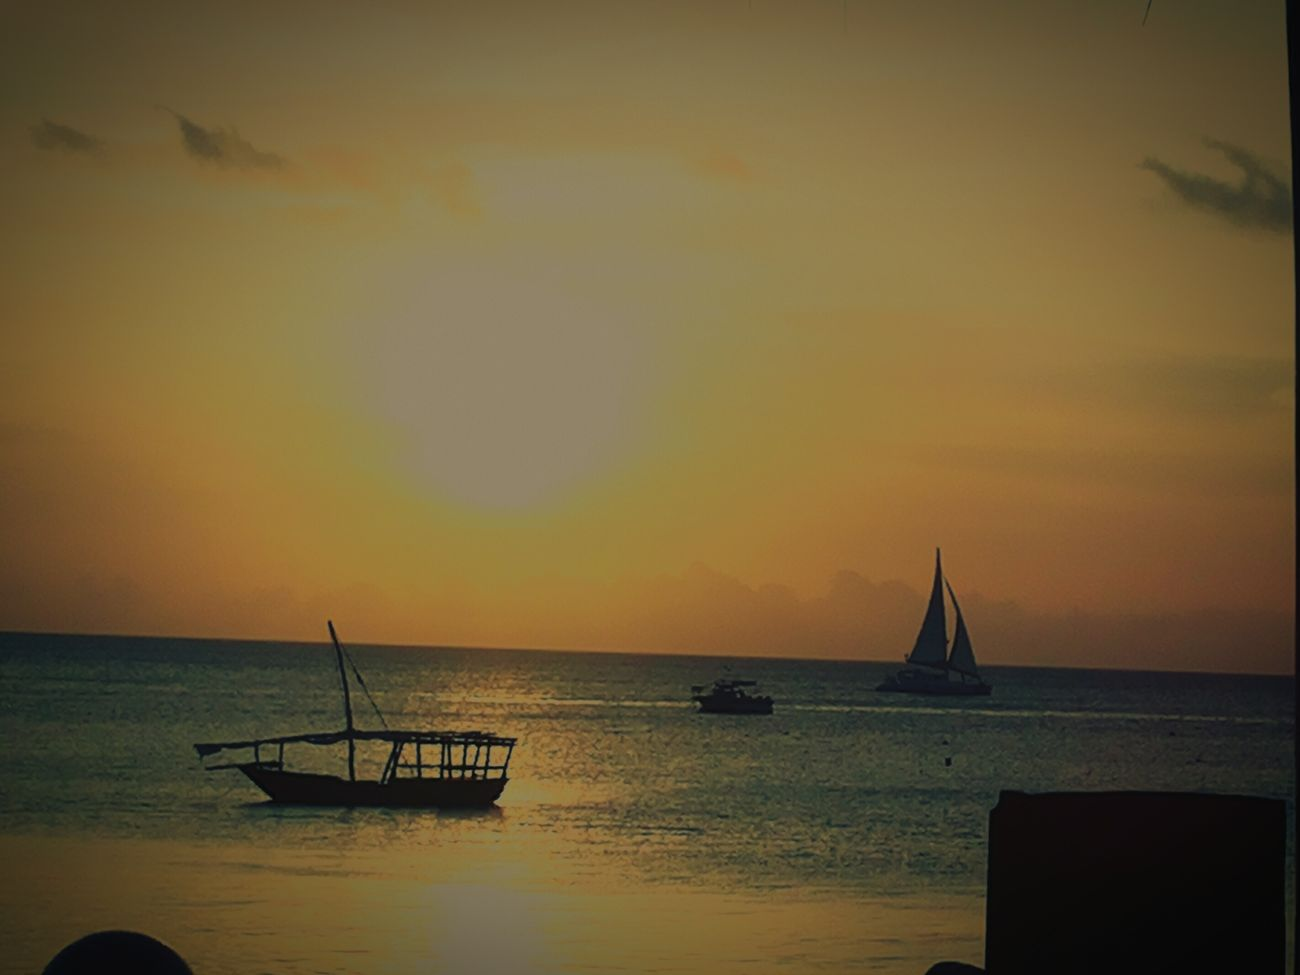 Sunset-1 Taking Photos Frist Eyeem Photos Sunset Sunset_collection Amazing View Coco Cabana Nungwi Zanzibar_Tanzania Zanzibarisland Zanzibar🏊🏄🎣 Indean Ocean African Beauty Nature Photography Marty